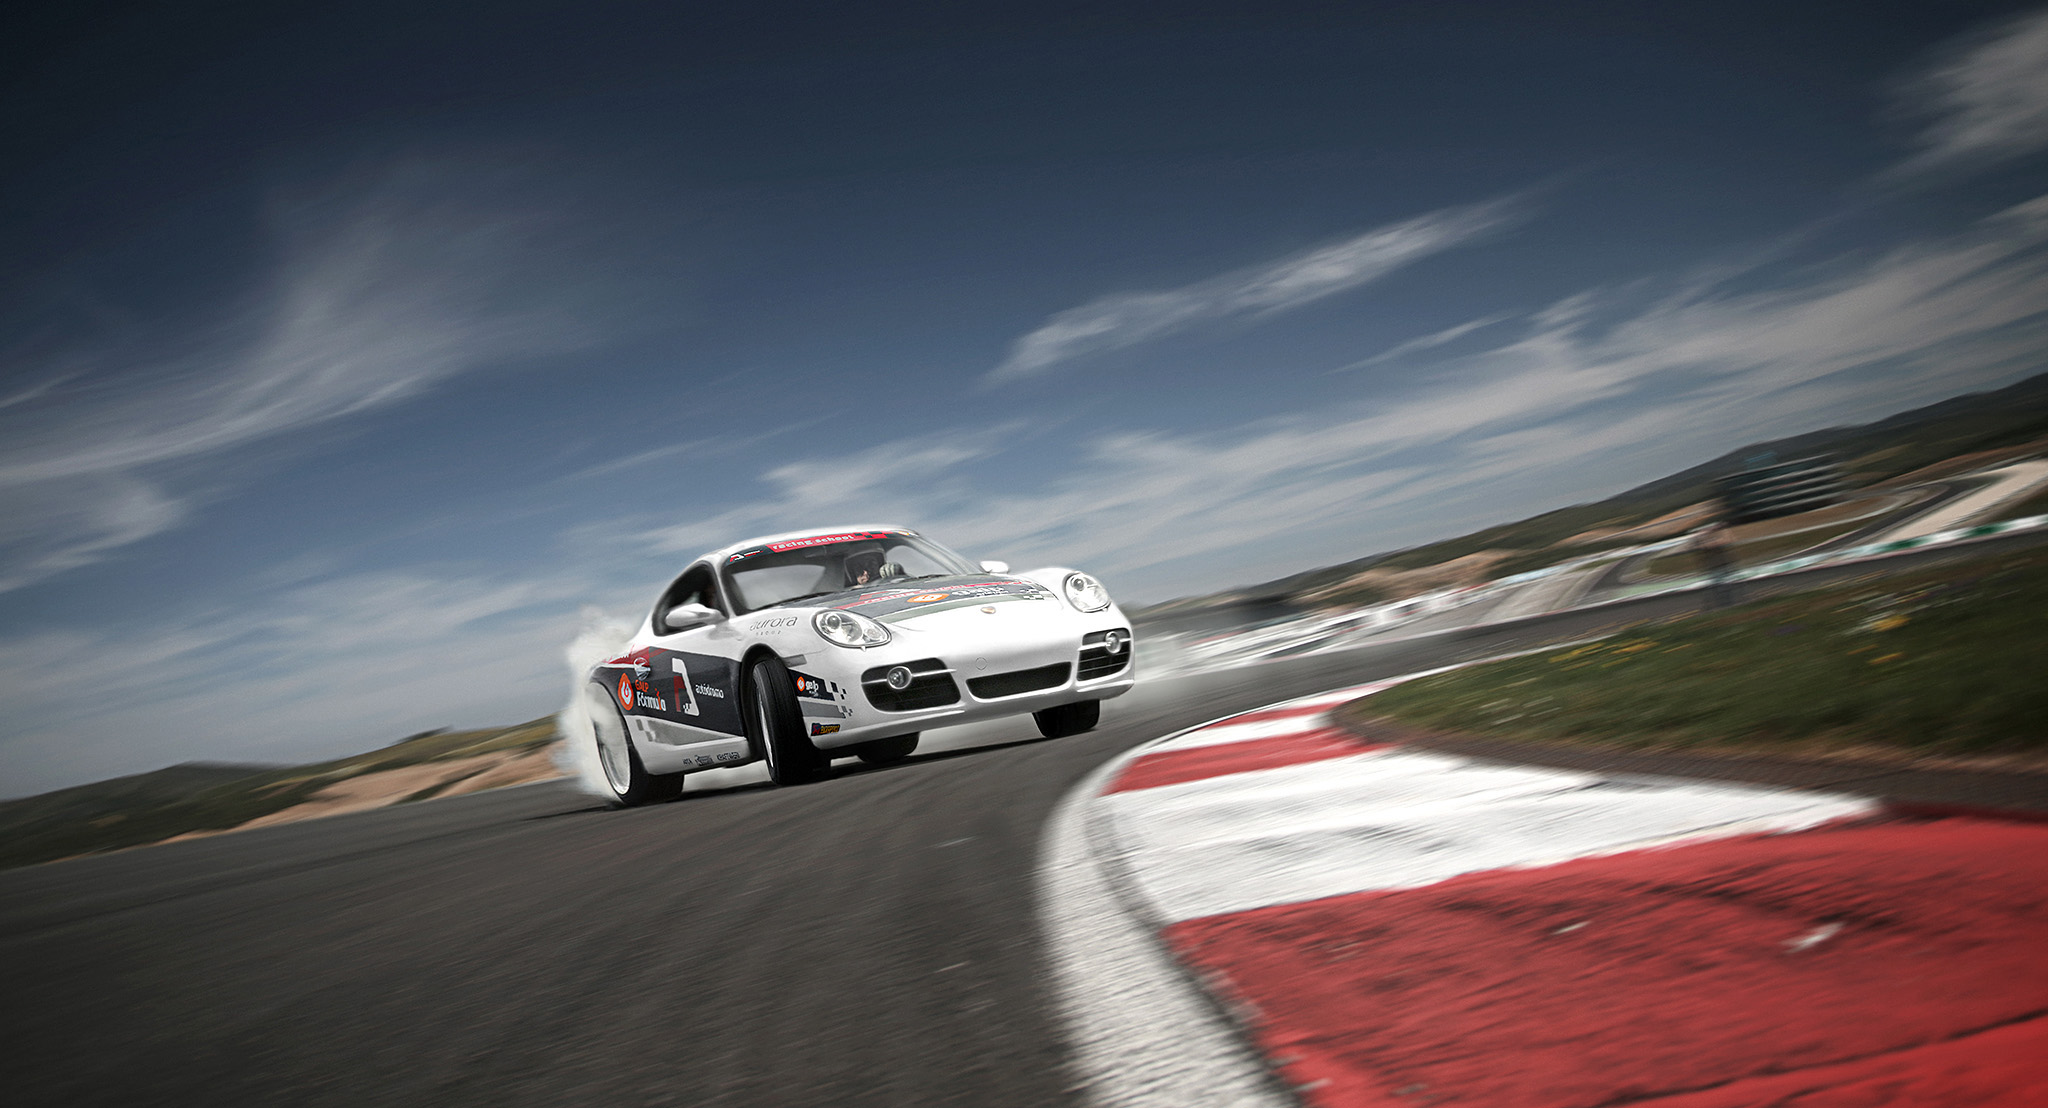 Images for a brochure, Autodromo International Algarve, Portugal